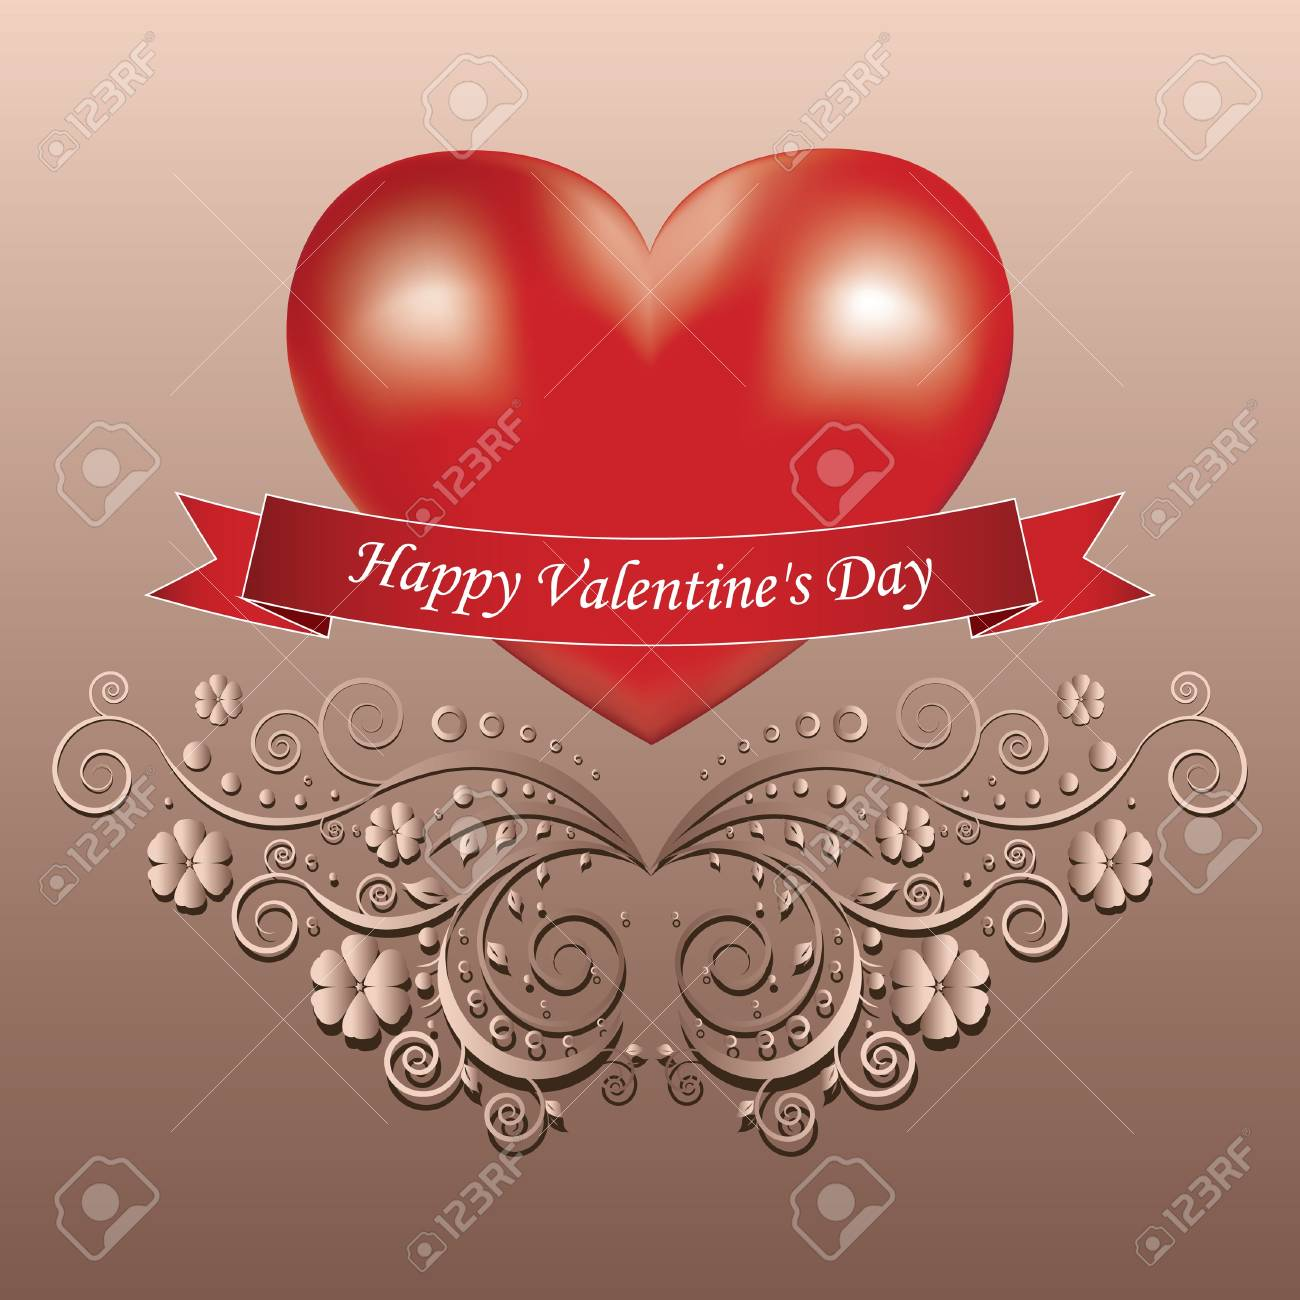 Valentine day greeting card Stock Vector - 17459691